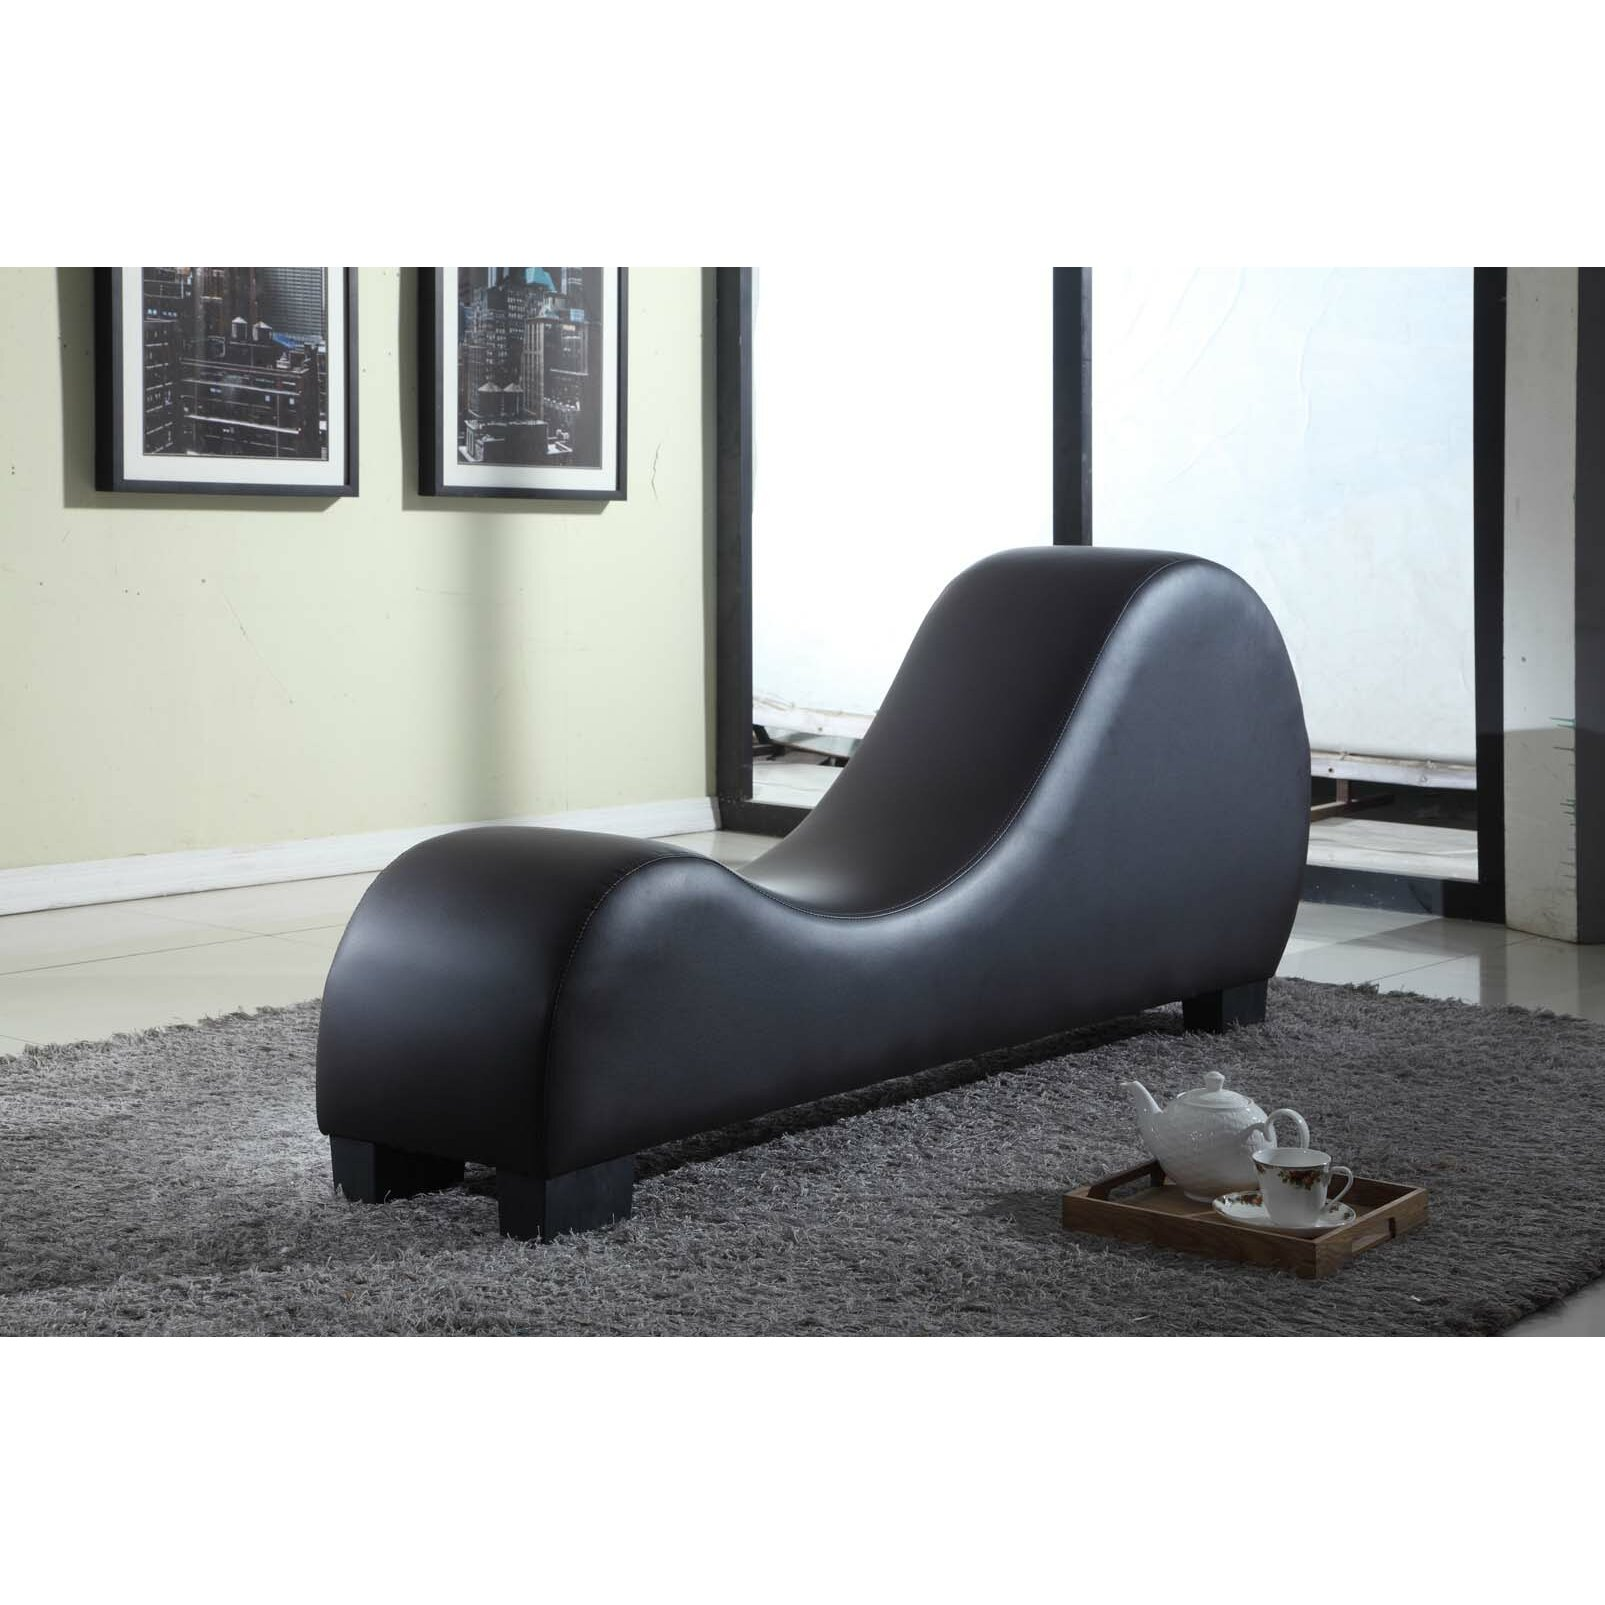 Container Faux Leather Stretch Chaise Yoga Chair & Reviews ...